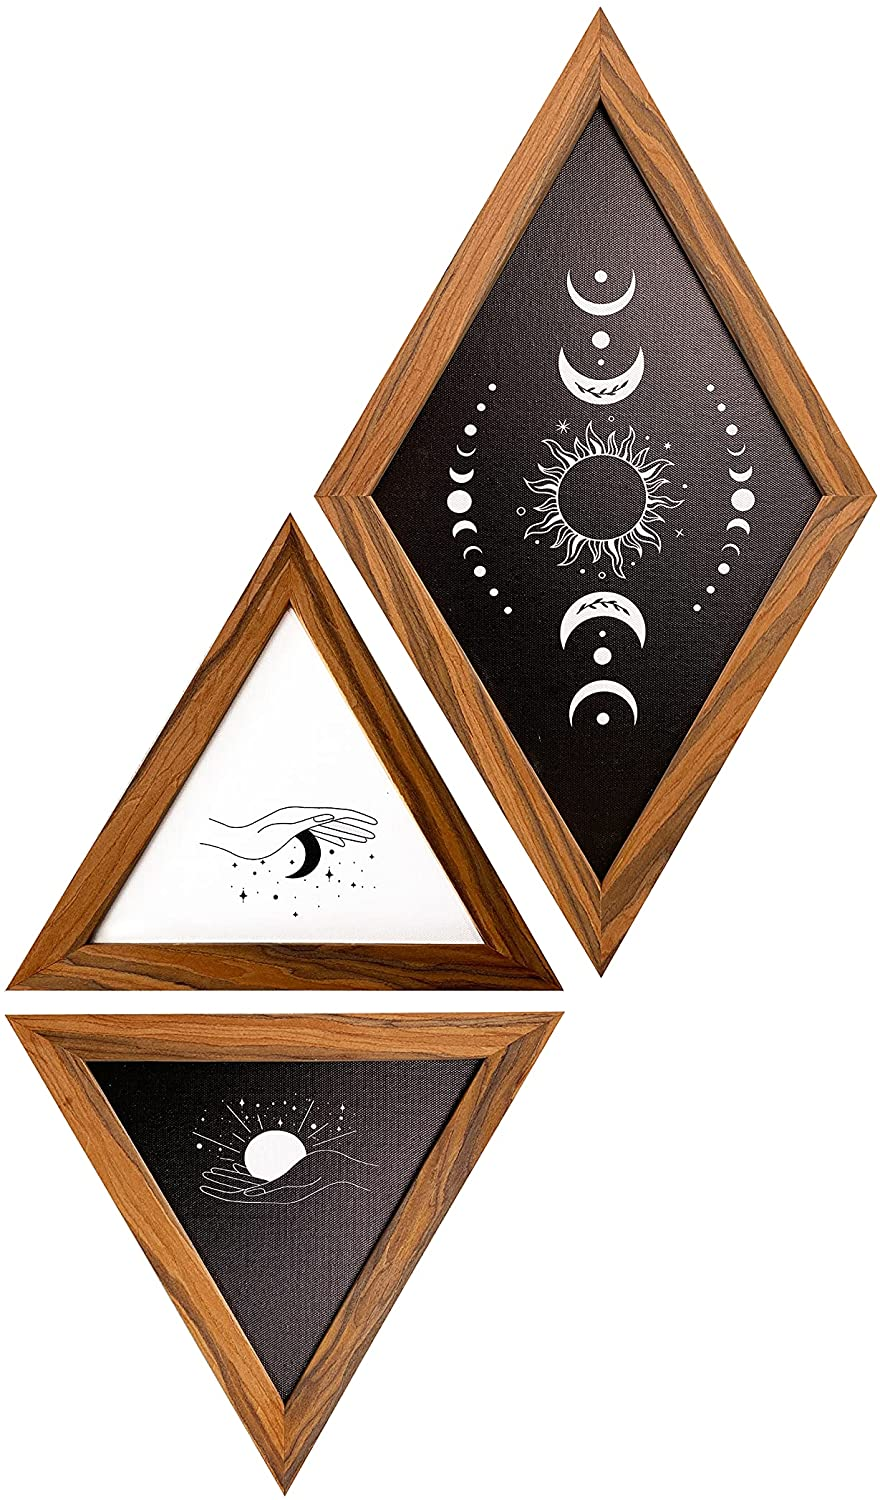 Mid Century Modern Decor Framed Wall Art for Bedroom , Minimalist Boho Wall Decorations for Living Room ,Set Of 3 Black and White Sun and Moon Wall Decor, Abstract Boho aesthetic wall decor